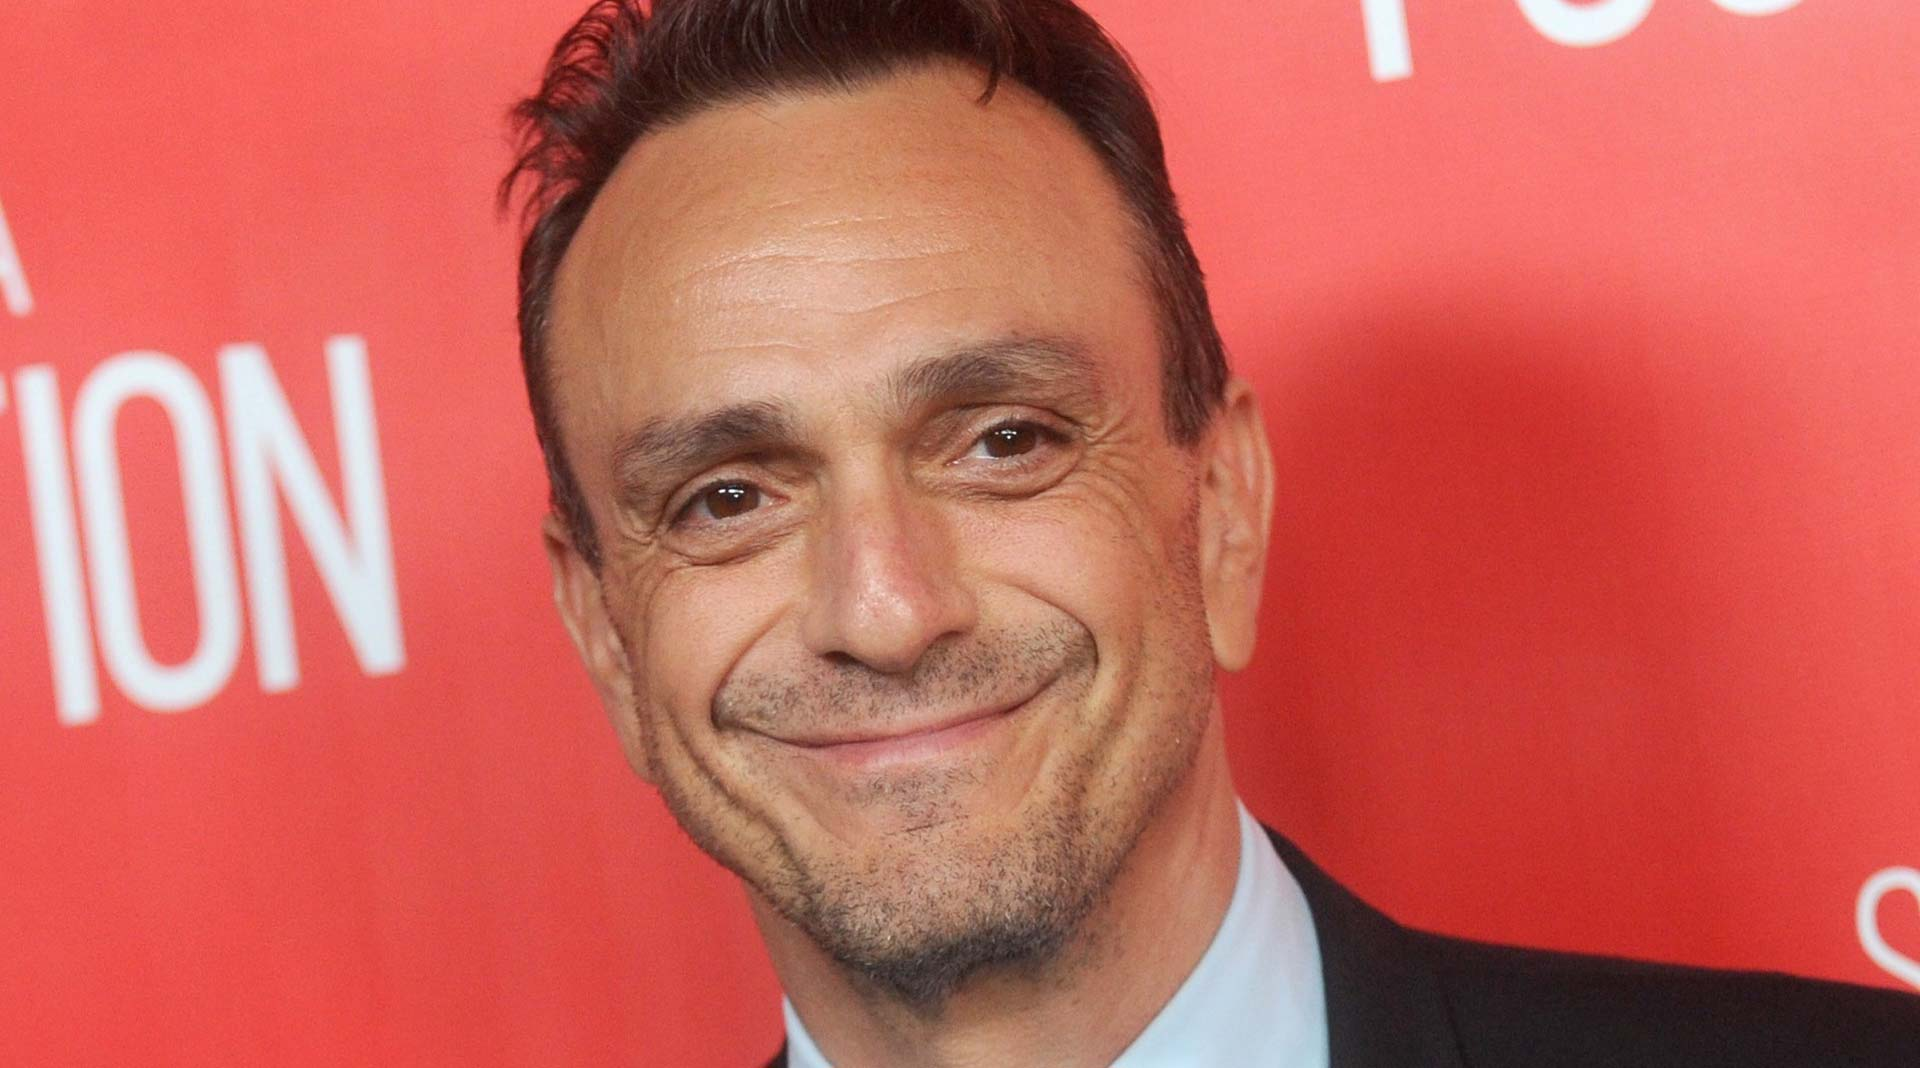 Hank Azaria Gets Thrown A Curve Ball Ifc